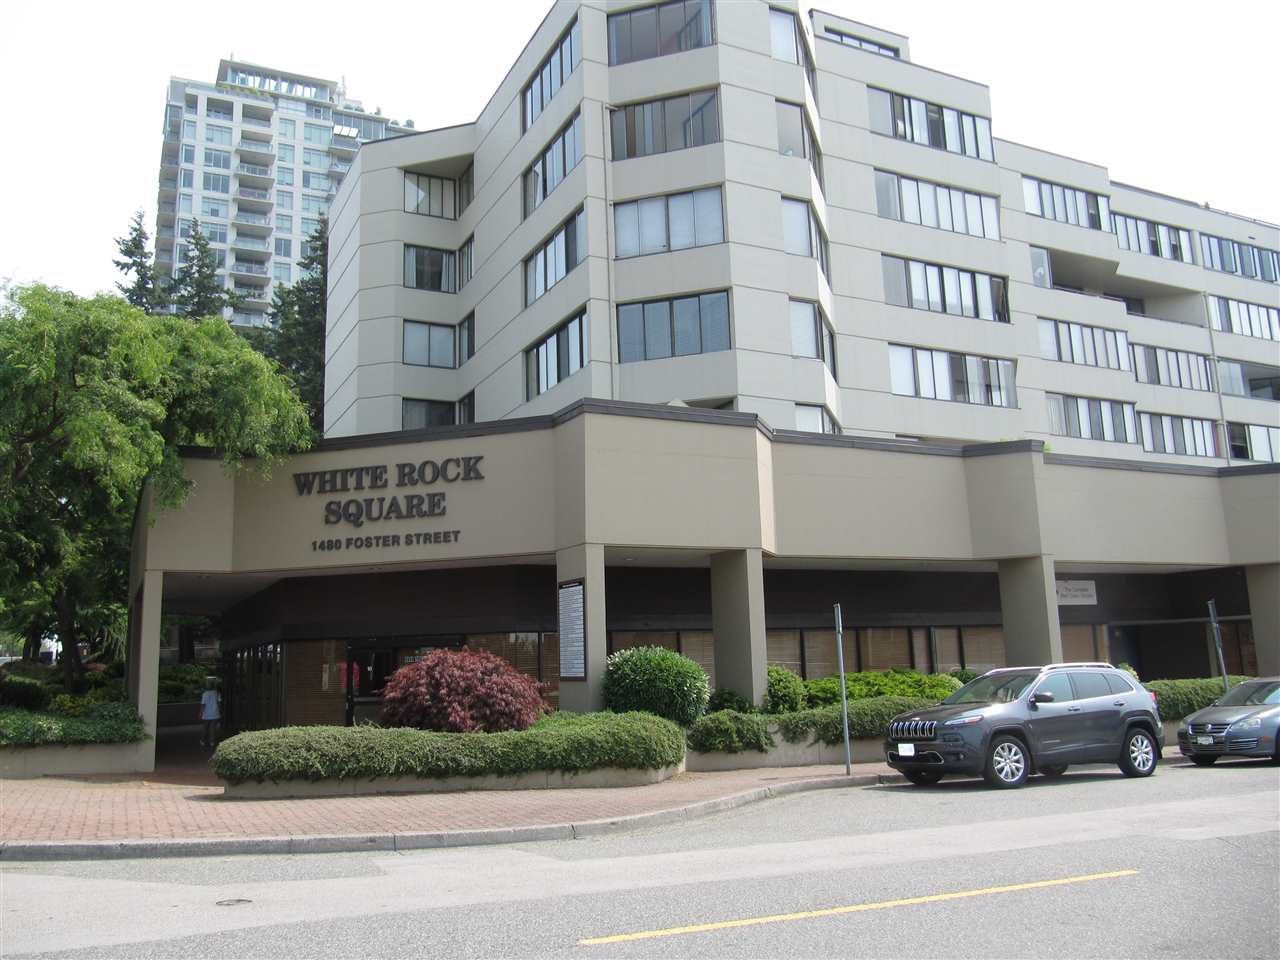 Condo Apartment at 204 1480 FOSTER STREET, Unit 204, South Surrey White Rock, British Columbia. Image 1